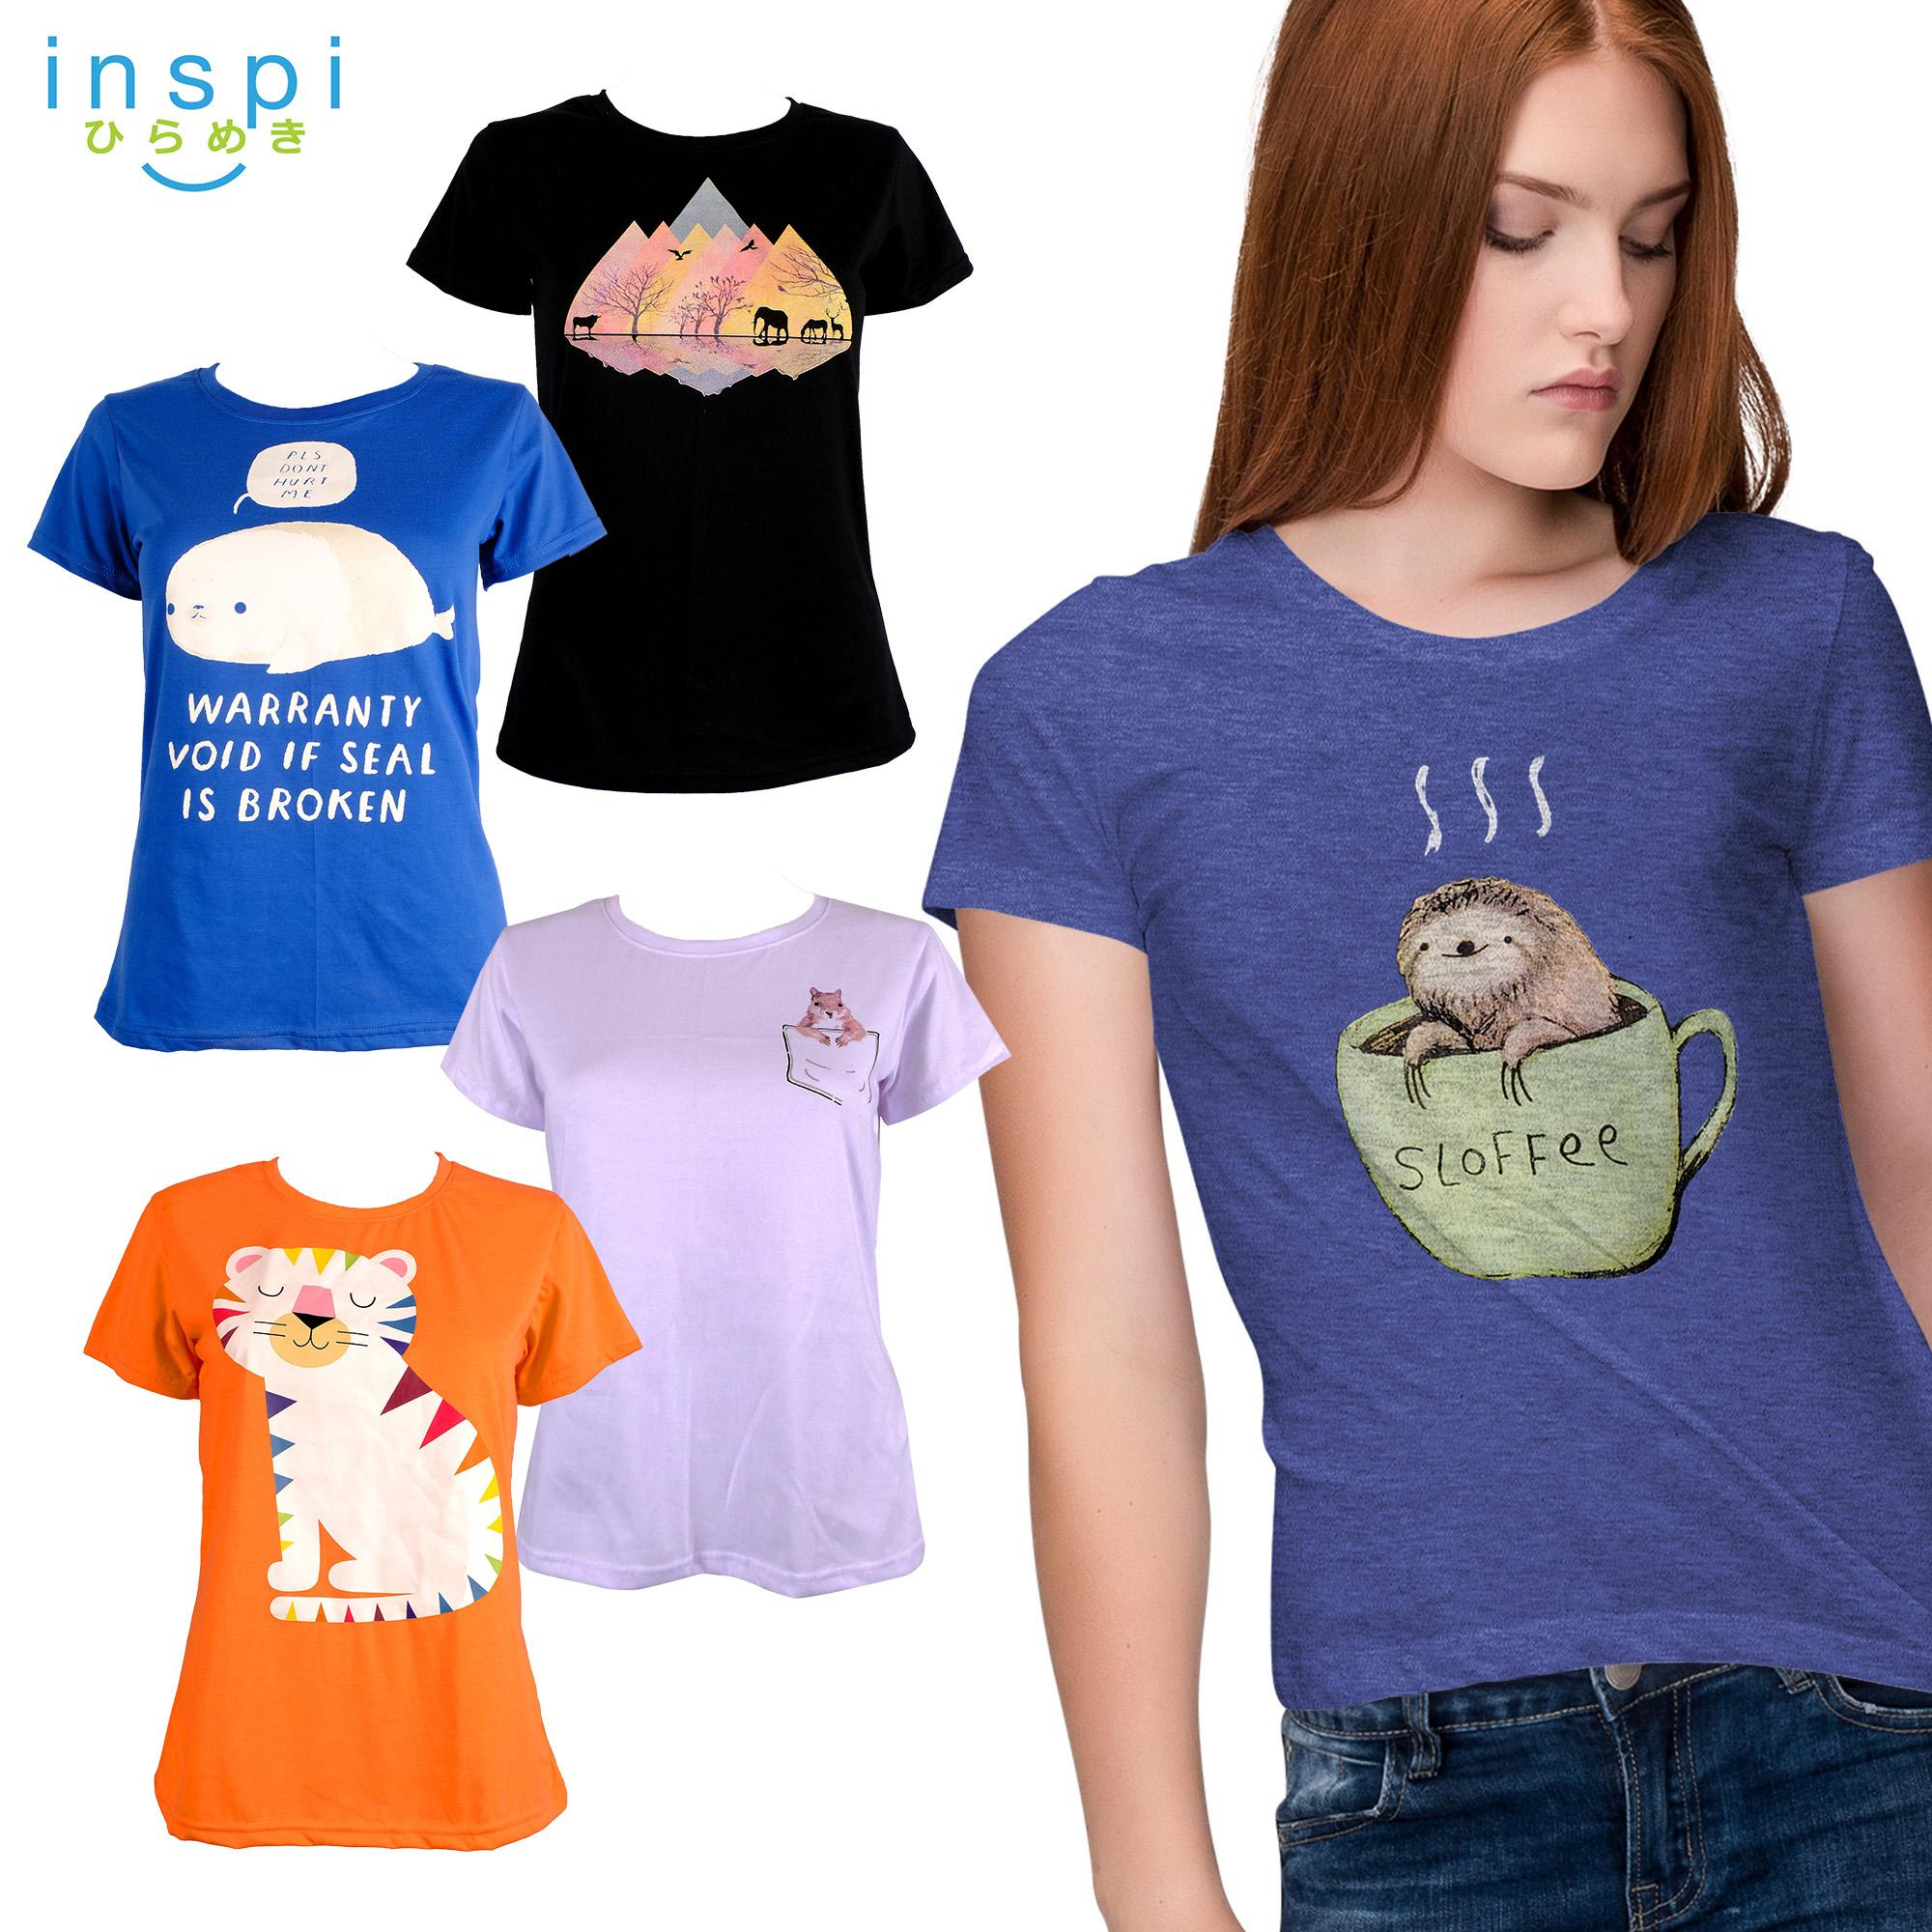 b47b249633ebf INSPI Tees Ladies Pet Collection tshirt printed graphic tee Ladies t shirt  shirts women tshirts for